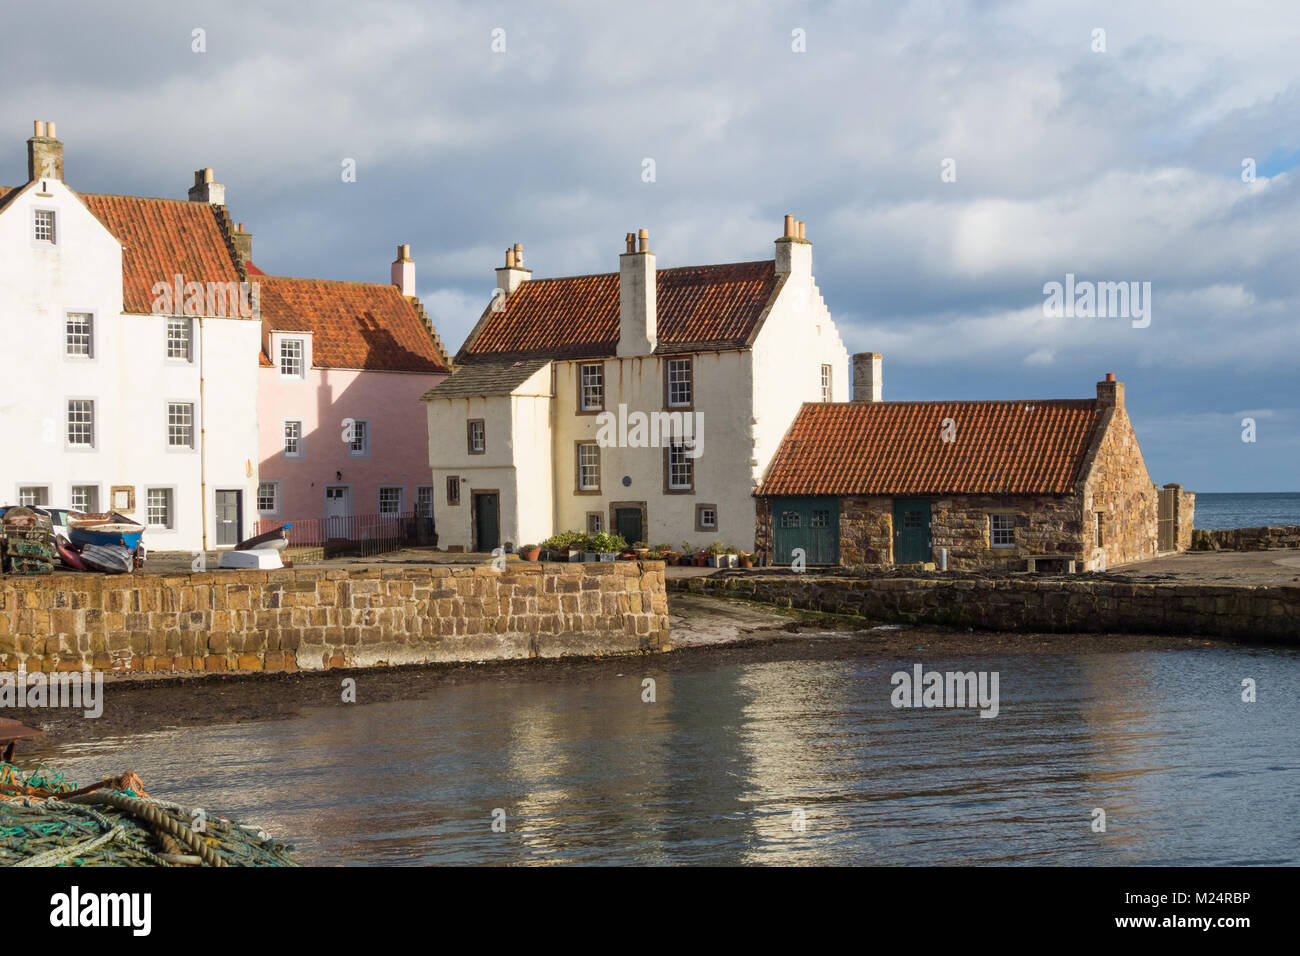 Crow stepped gable pantiled roofs on Gyles House and surrounding cottages in Pittenweem, Fife, Scotland, UK - Stock Image